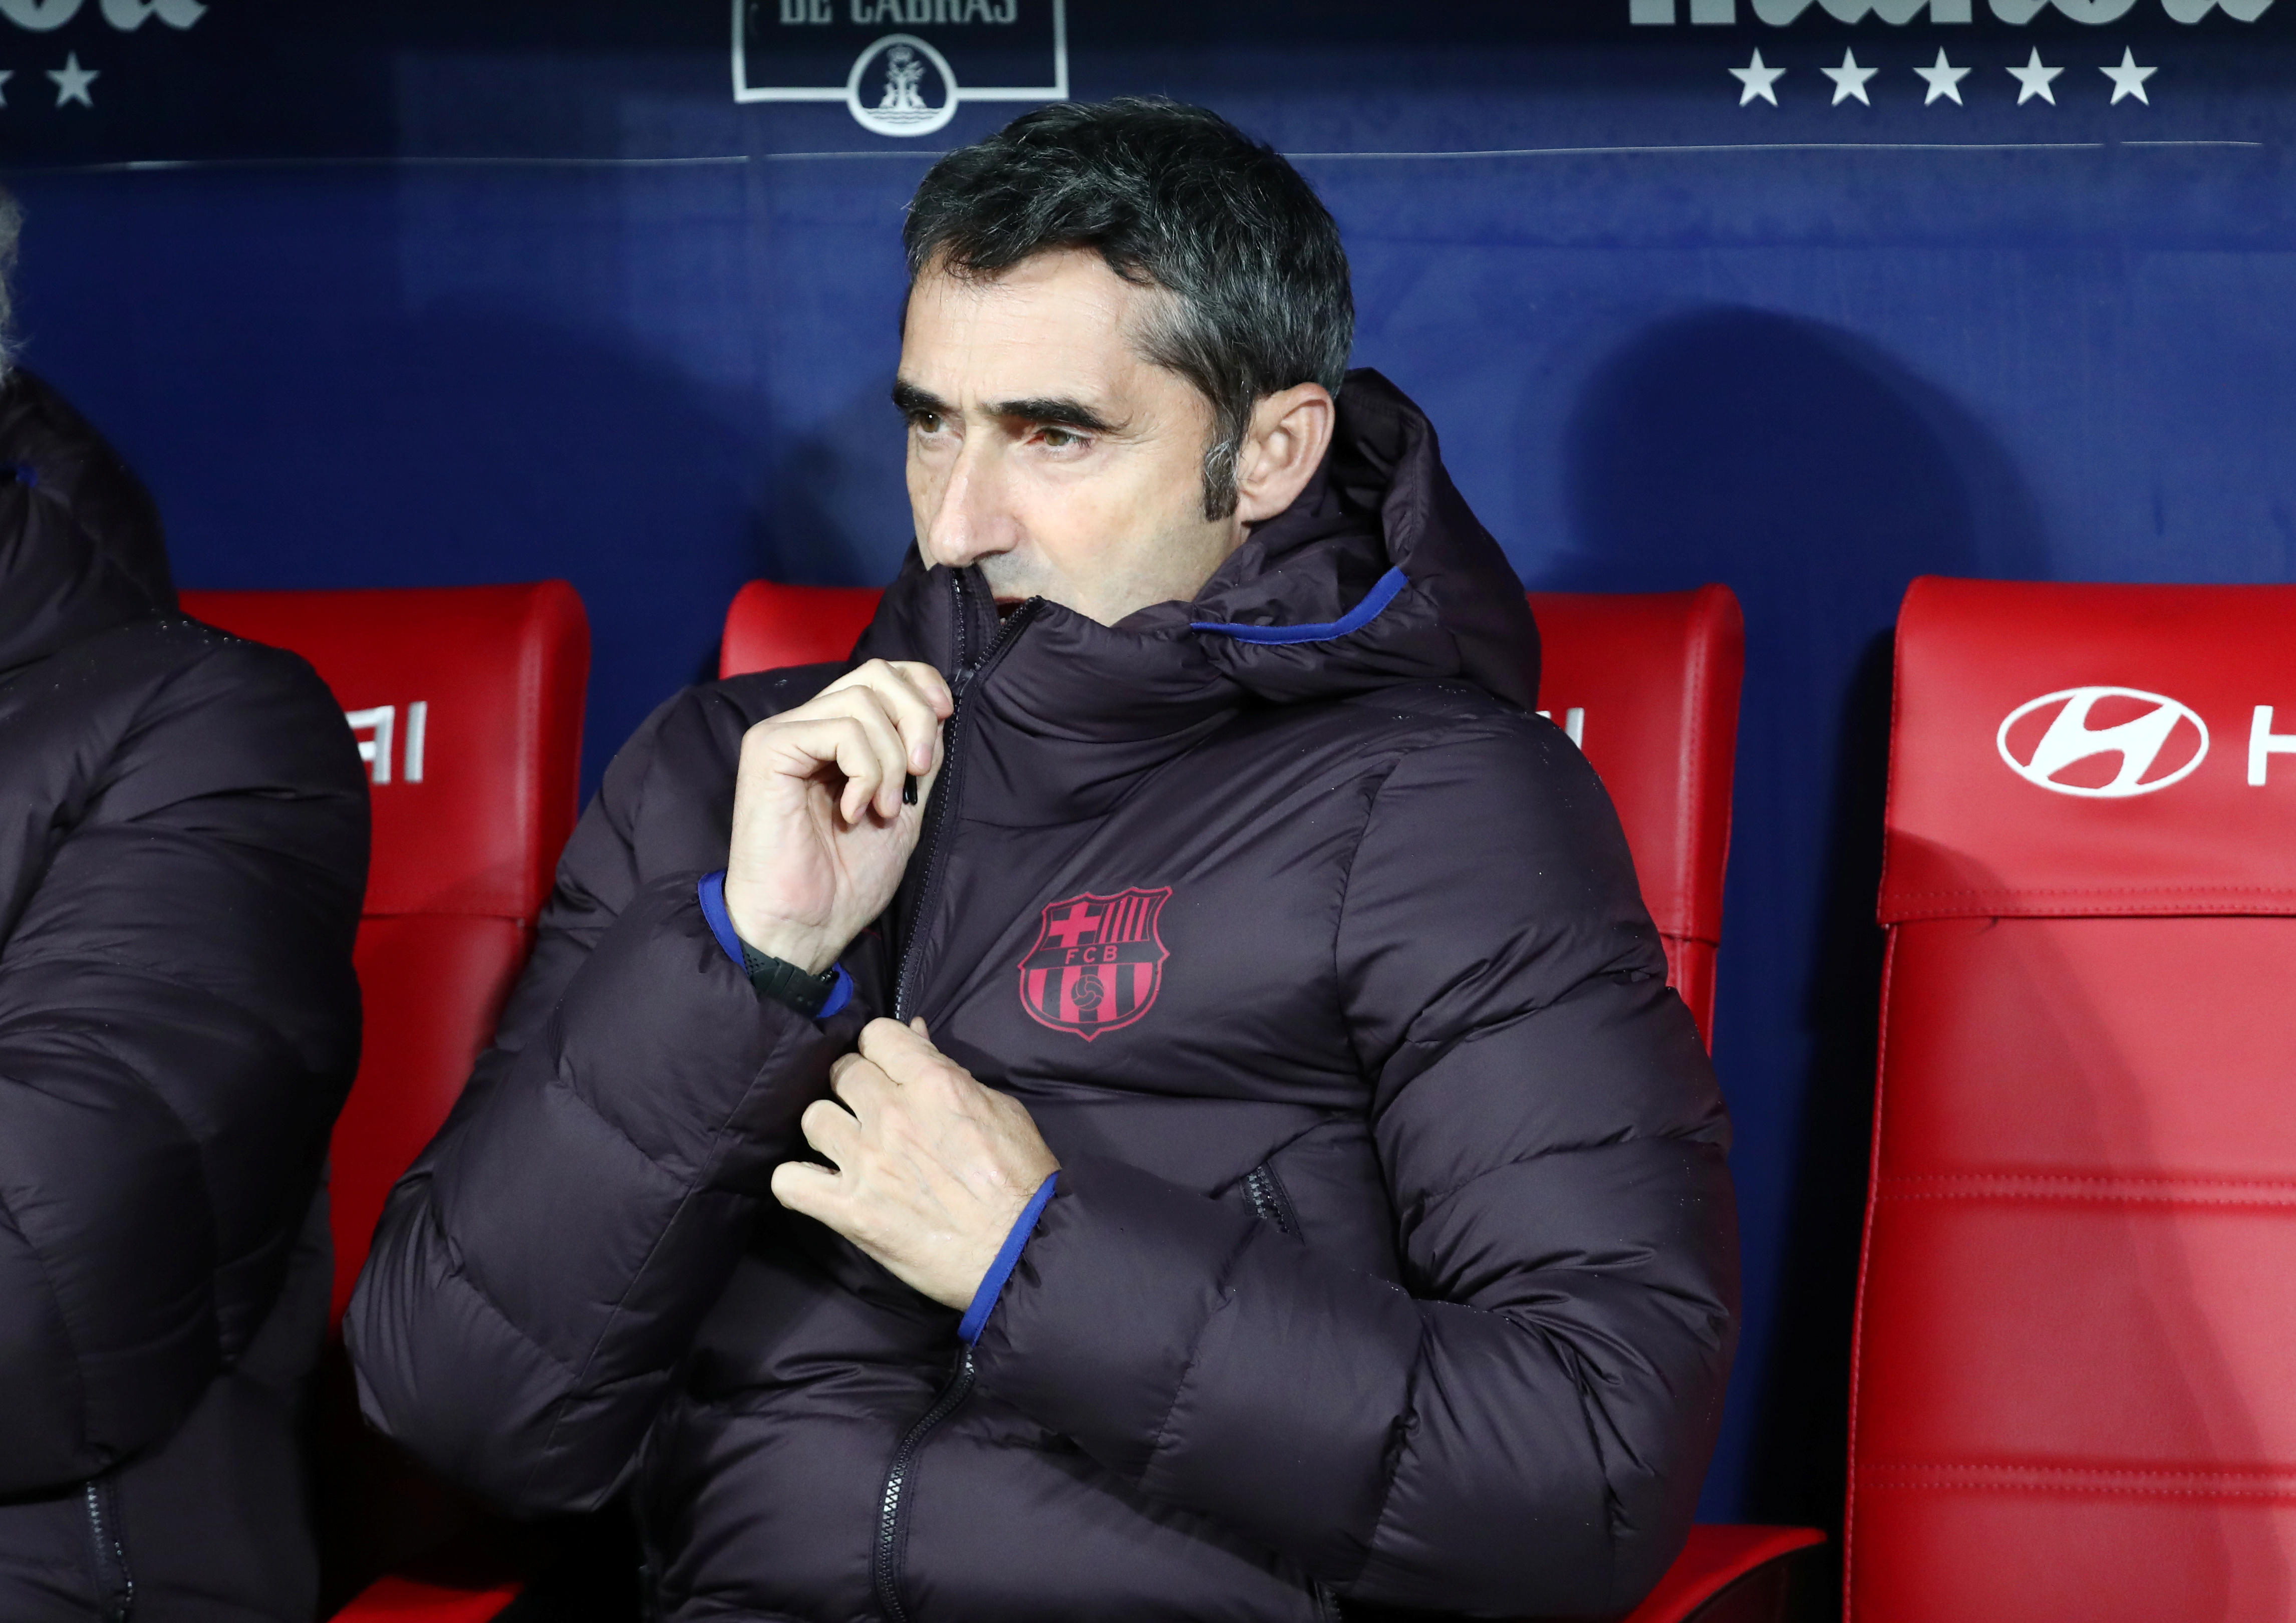 3 worst Barcelona managers valverde